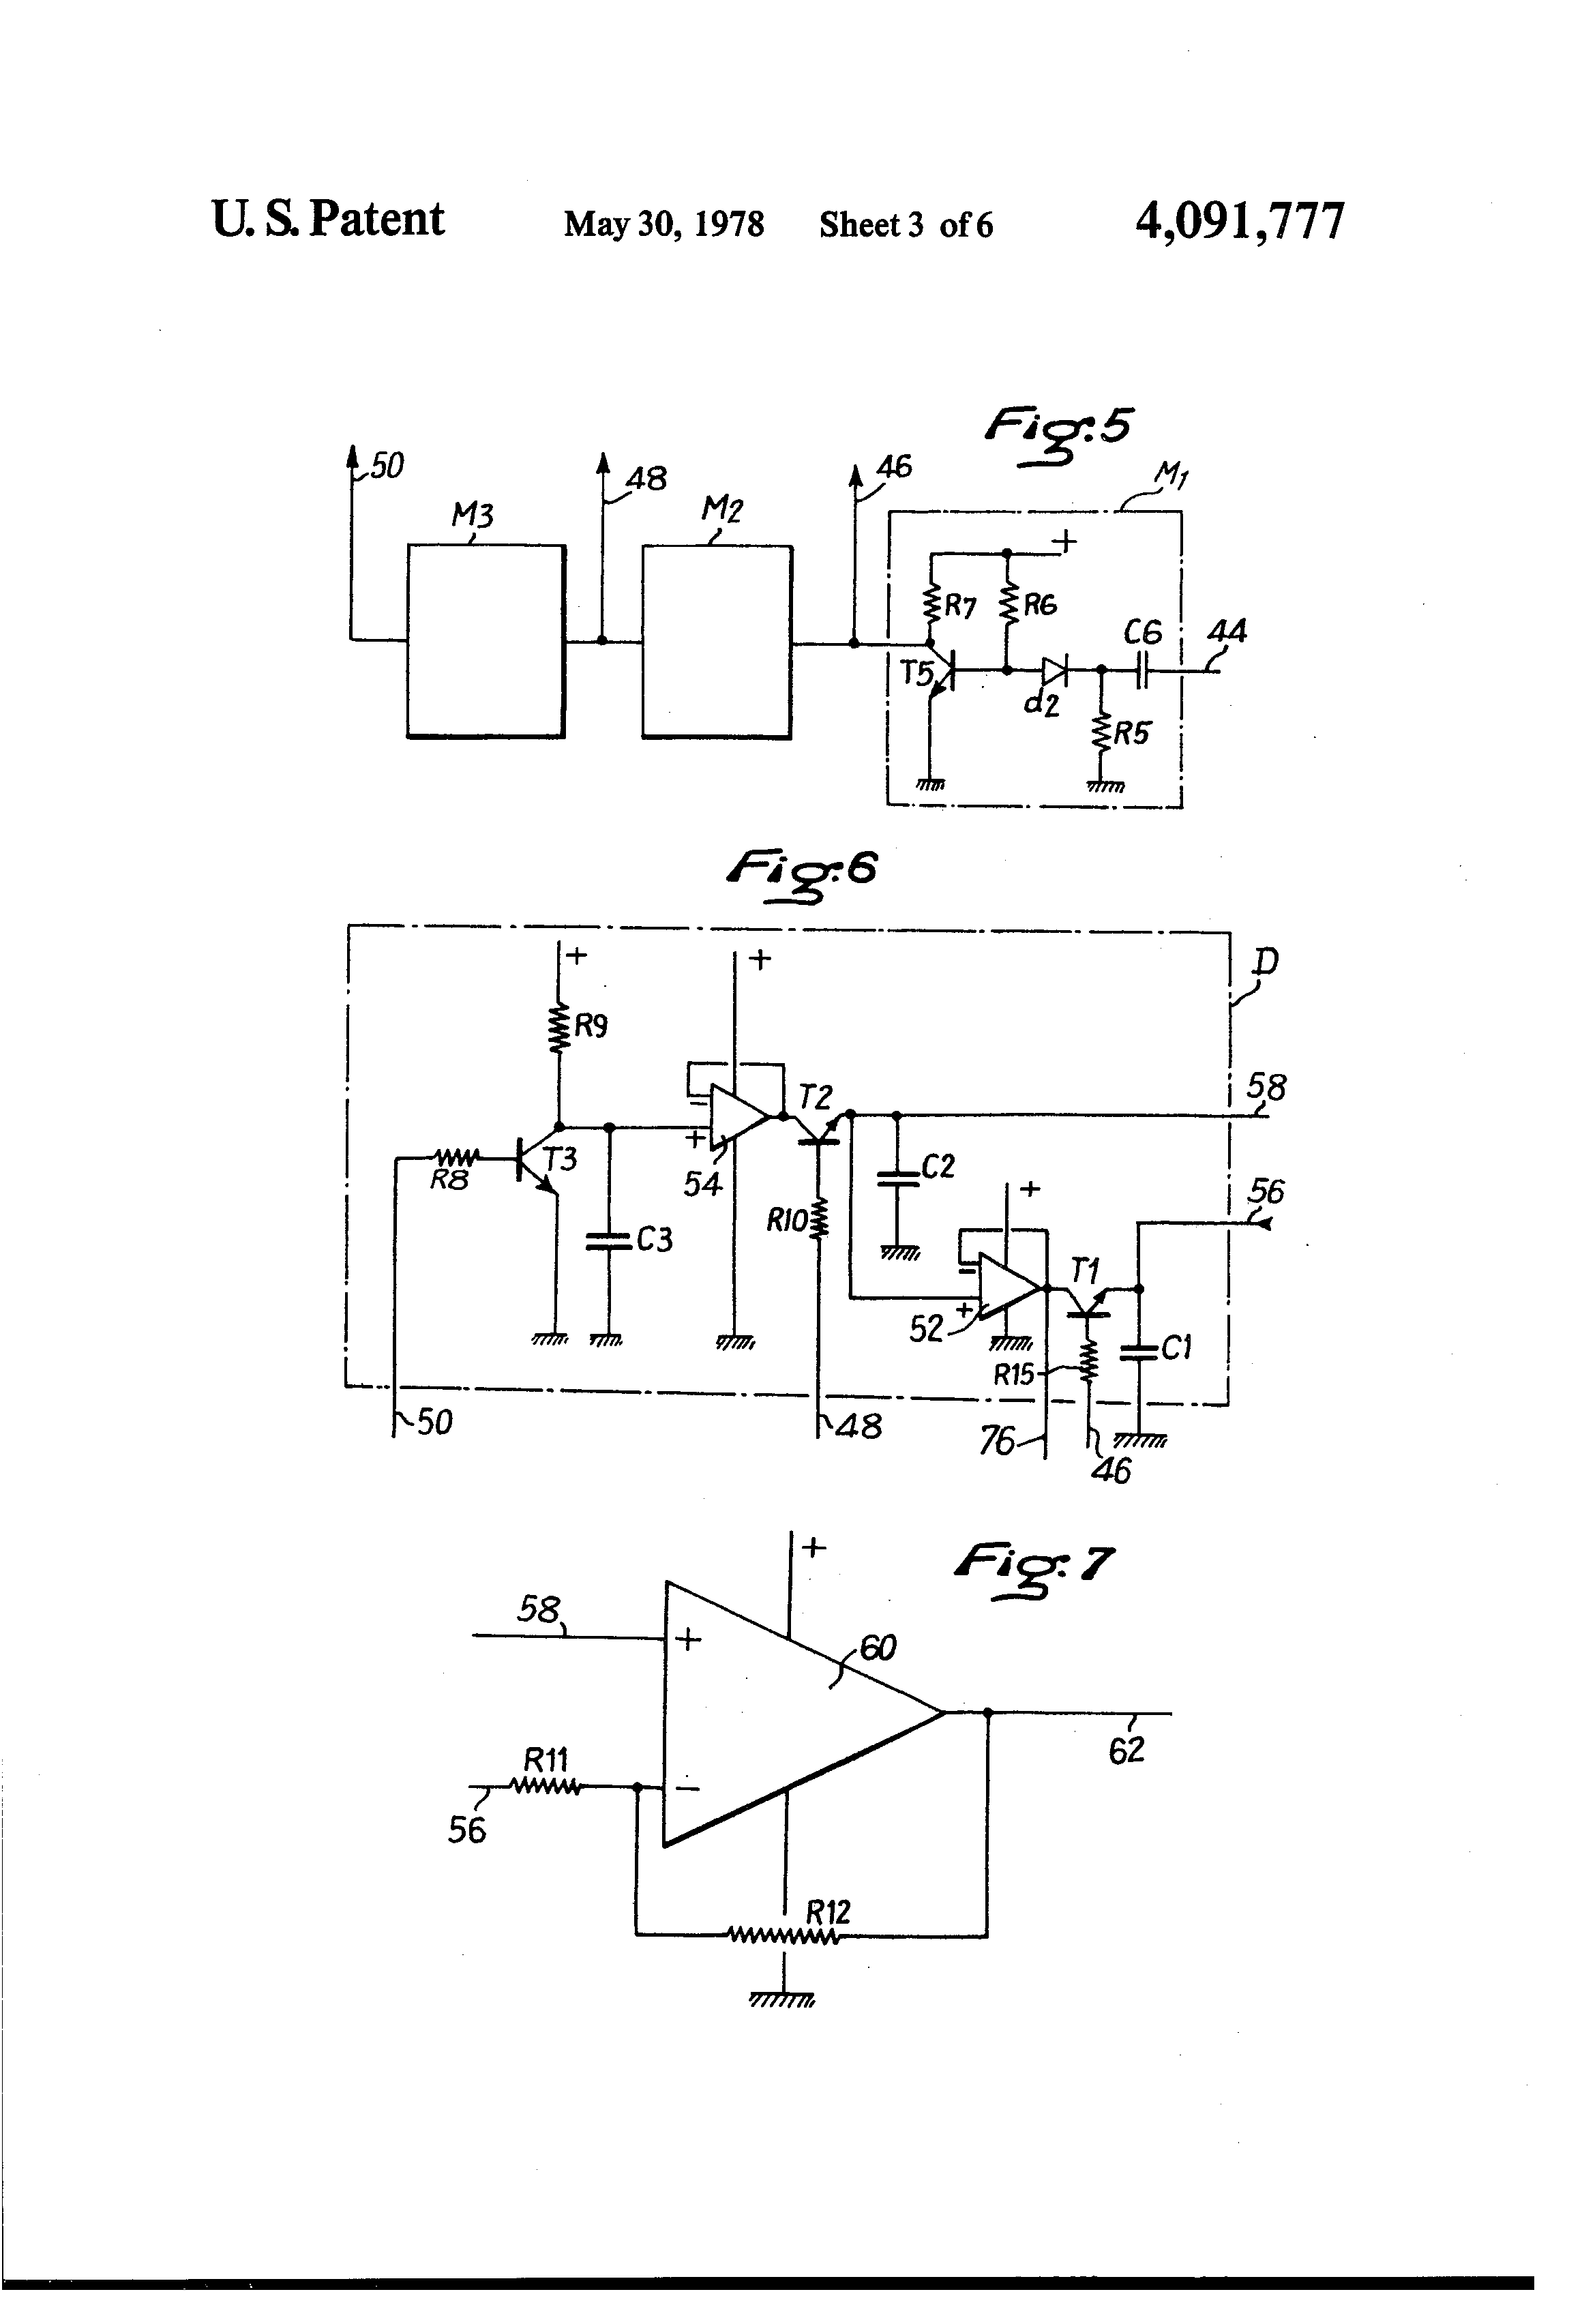 Patent Us4091777 Electronic Control Circuit For A Carburetor Generators Network D1 R1 D2 R2 P3 Makes It Possible To Give Integrator Drawing